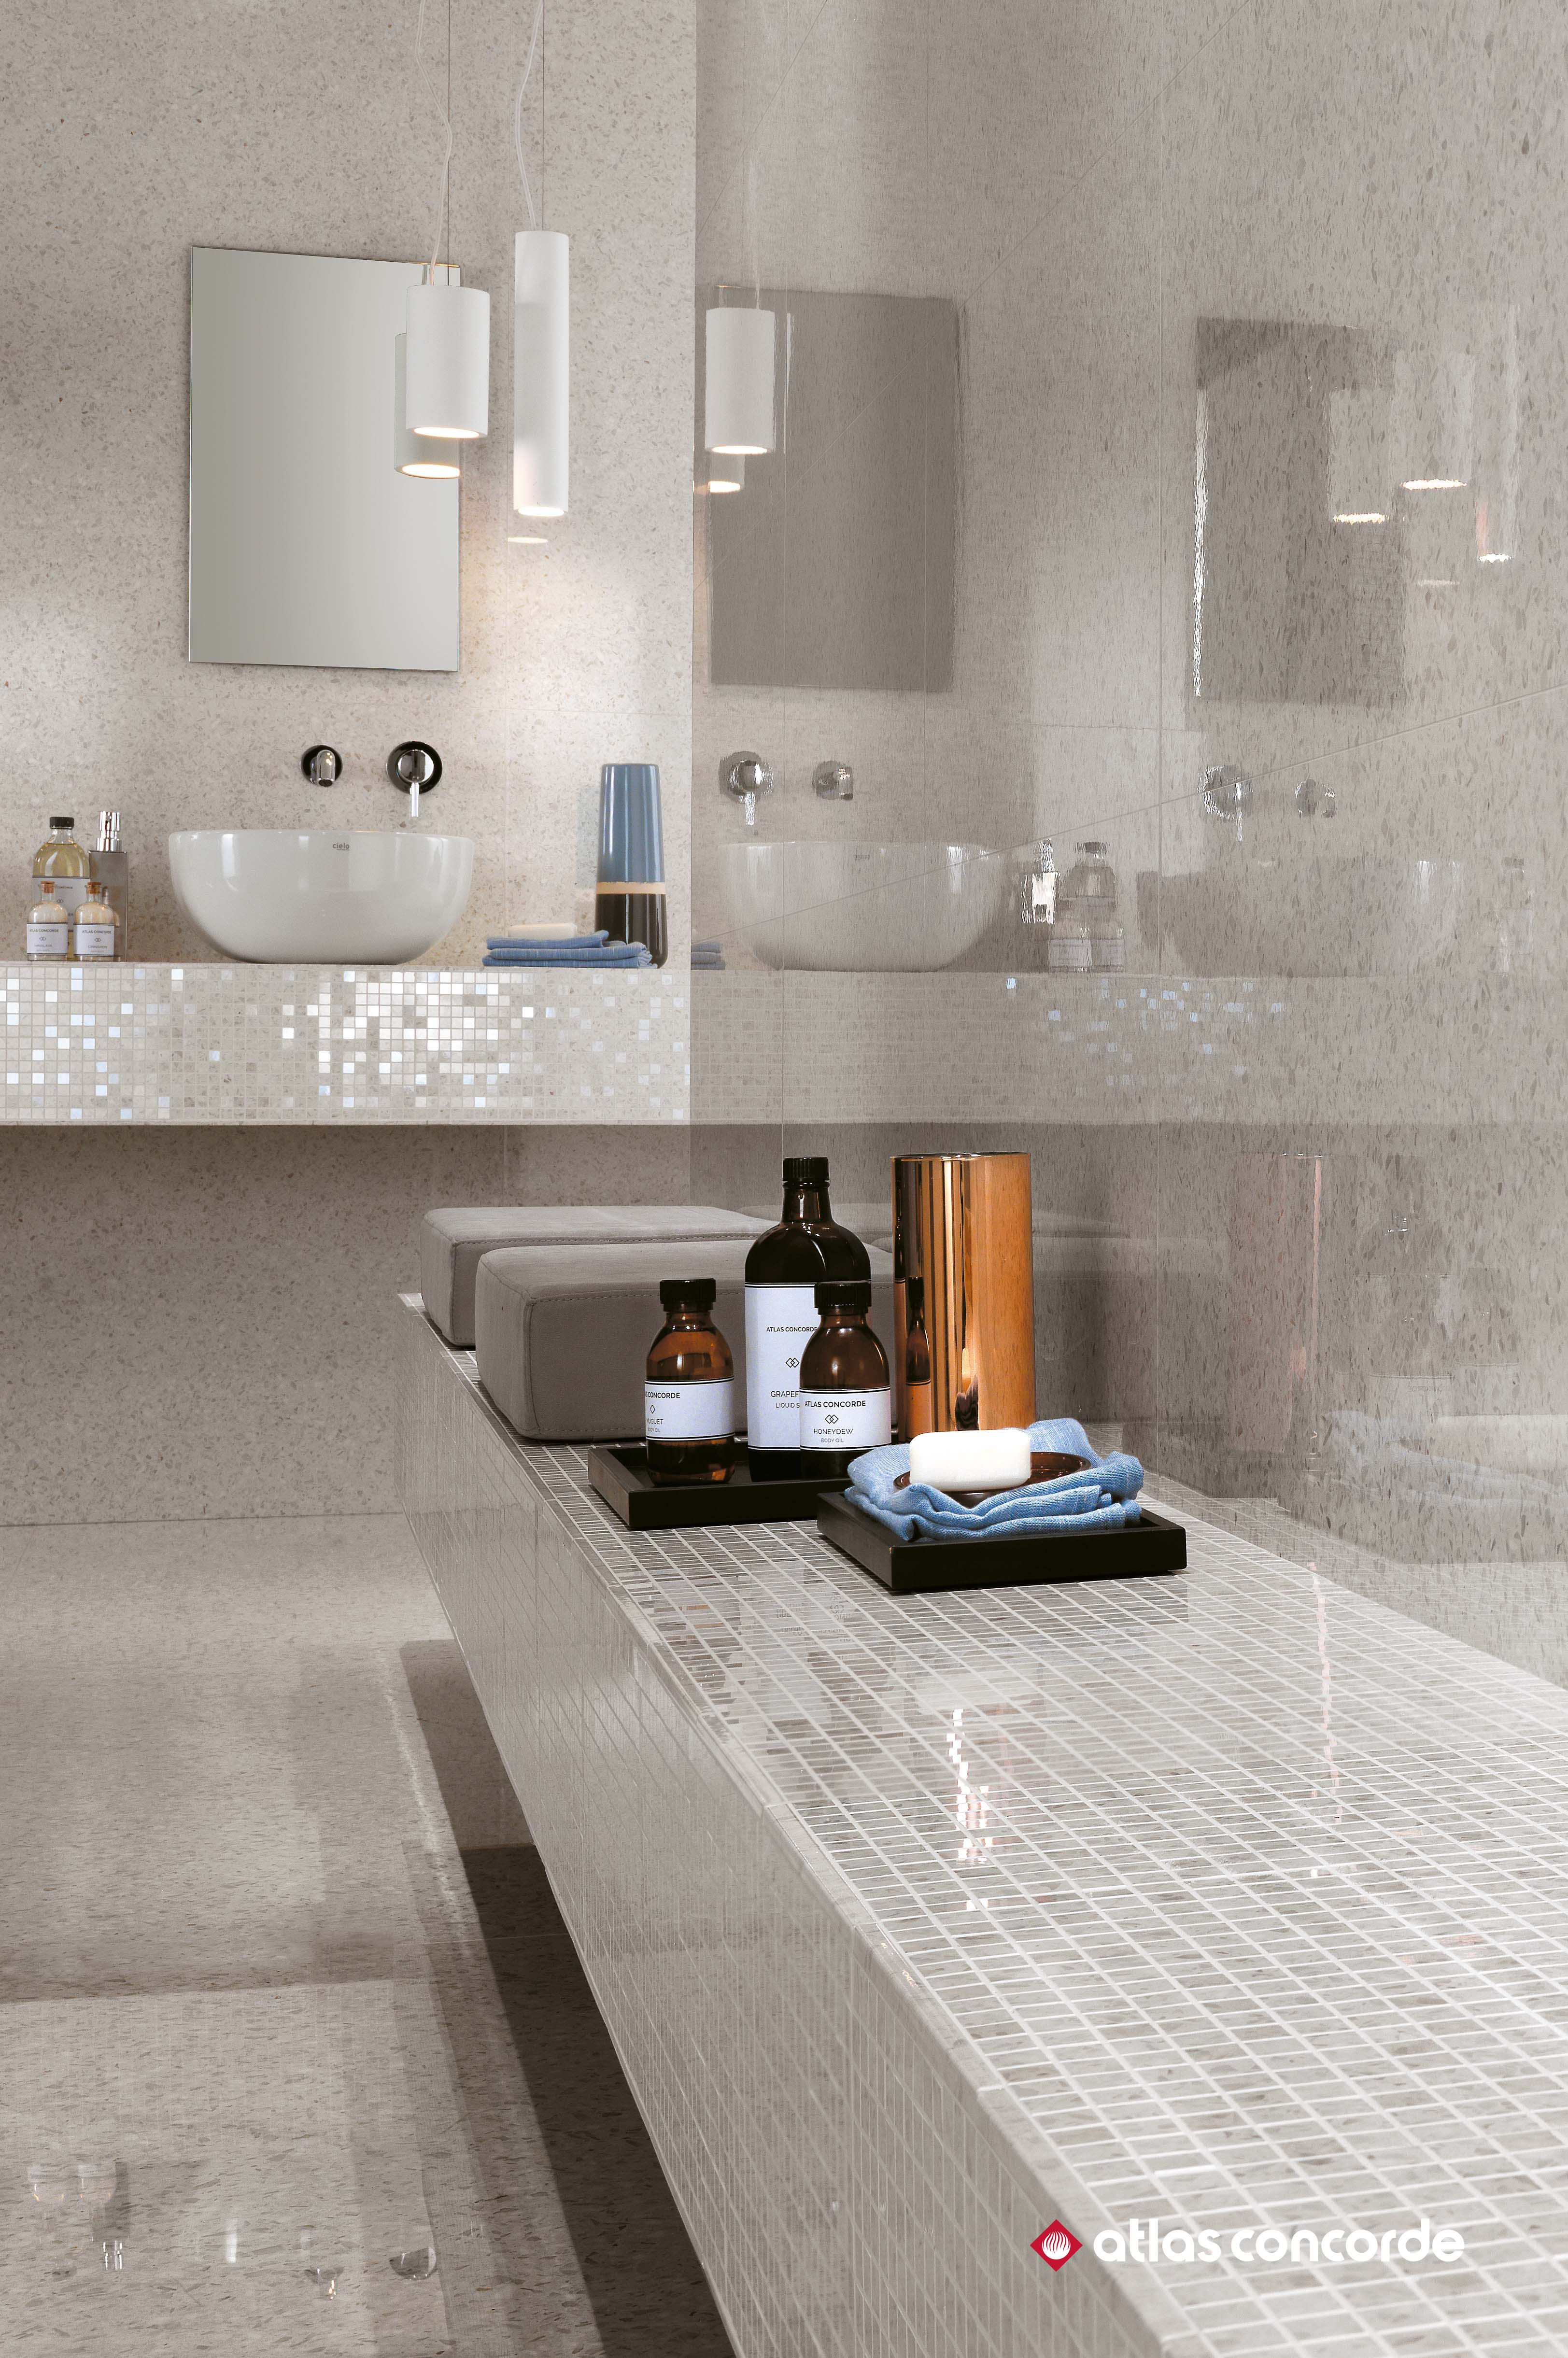 Gleaming wall tiles inspired by Terrazzo for